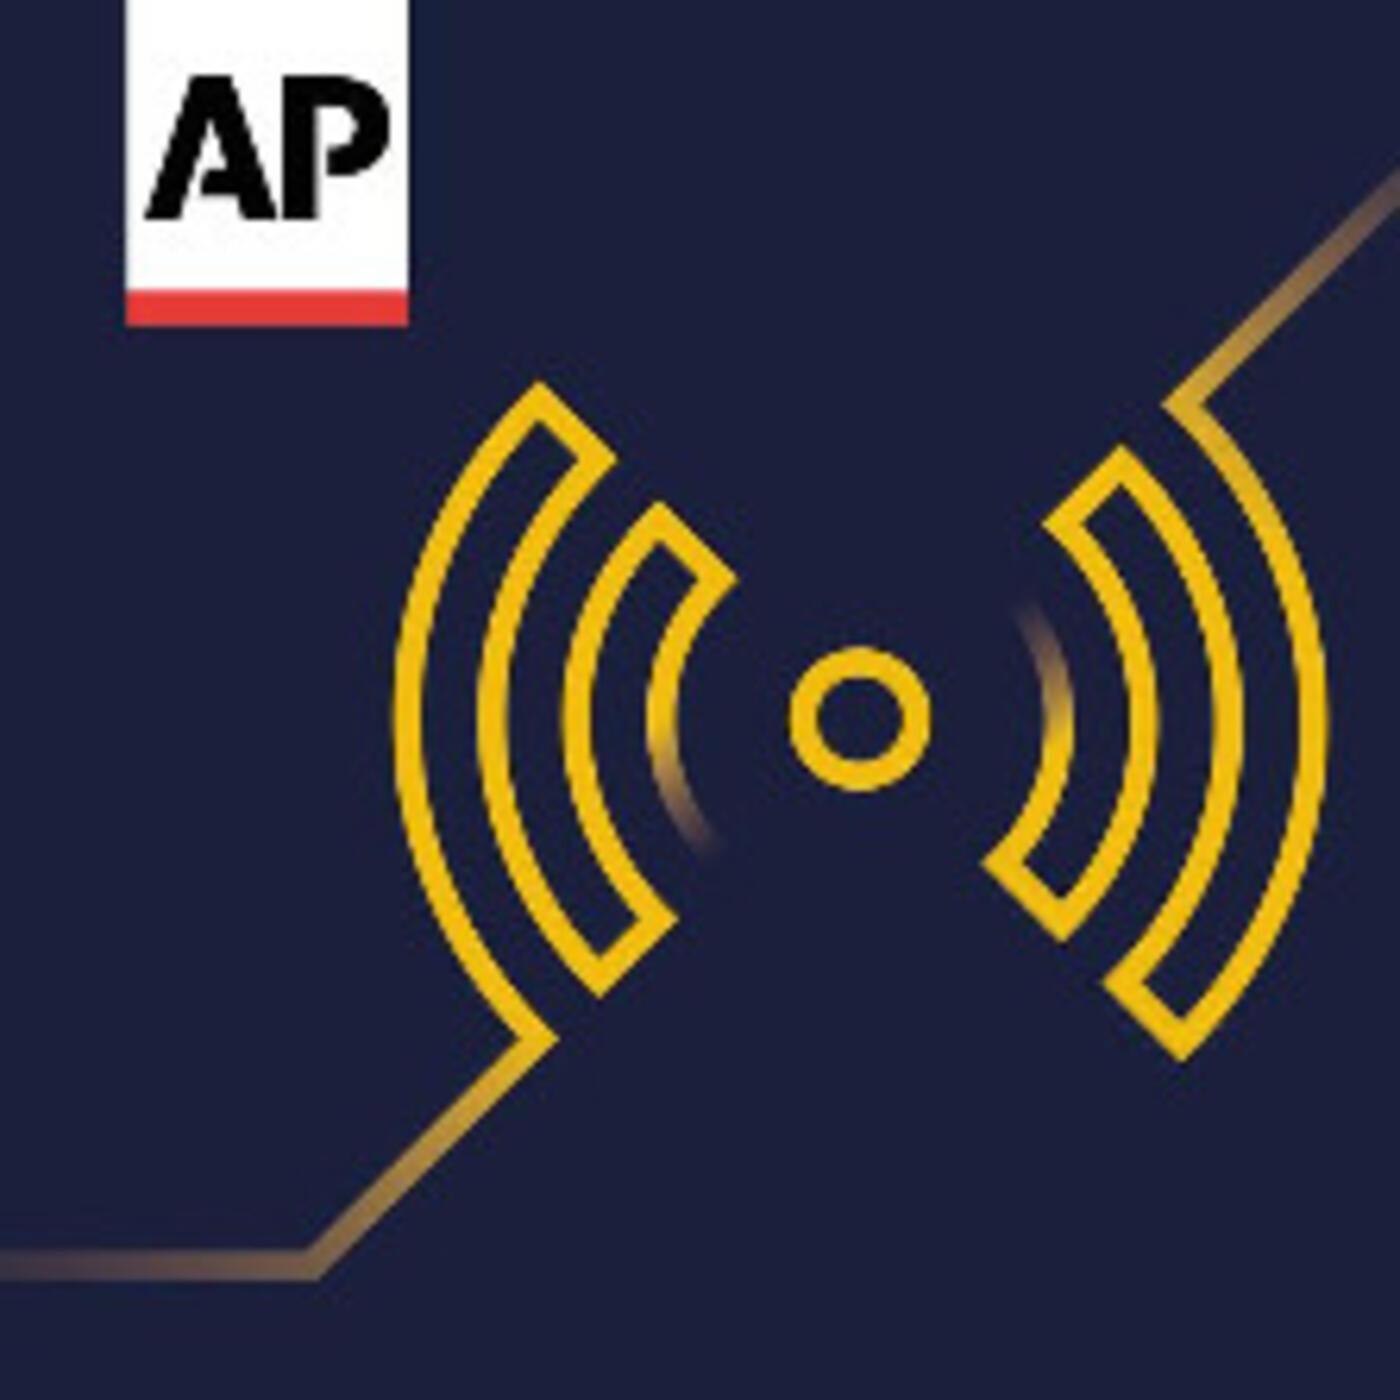 AP Newswatch: COVID-19 Update Oct 19 2020 17:00 (EDT)